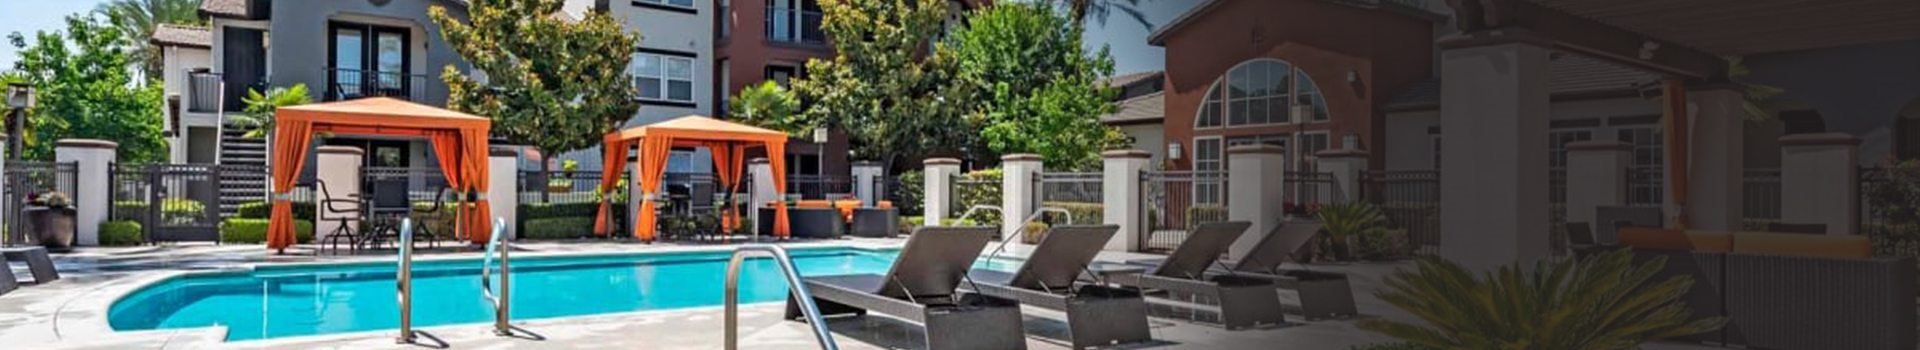 Relaxing Pool Area With Sundeck at Vista Imperio, Riverside, California